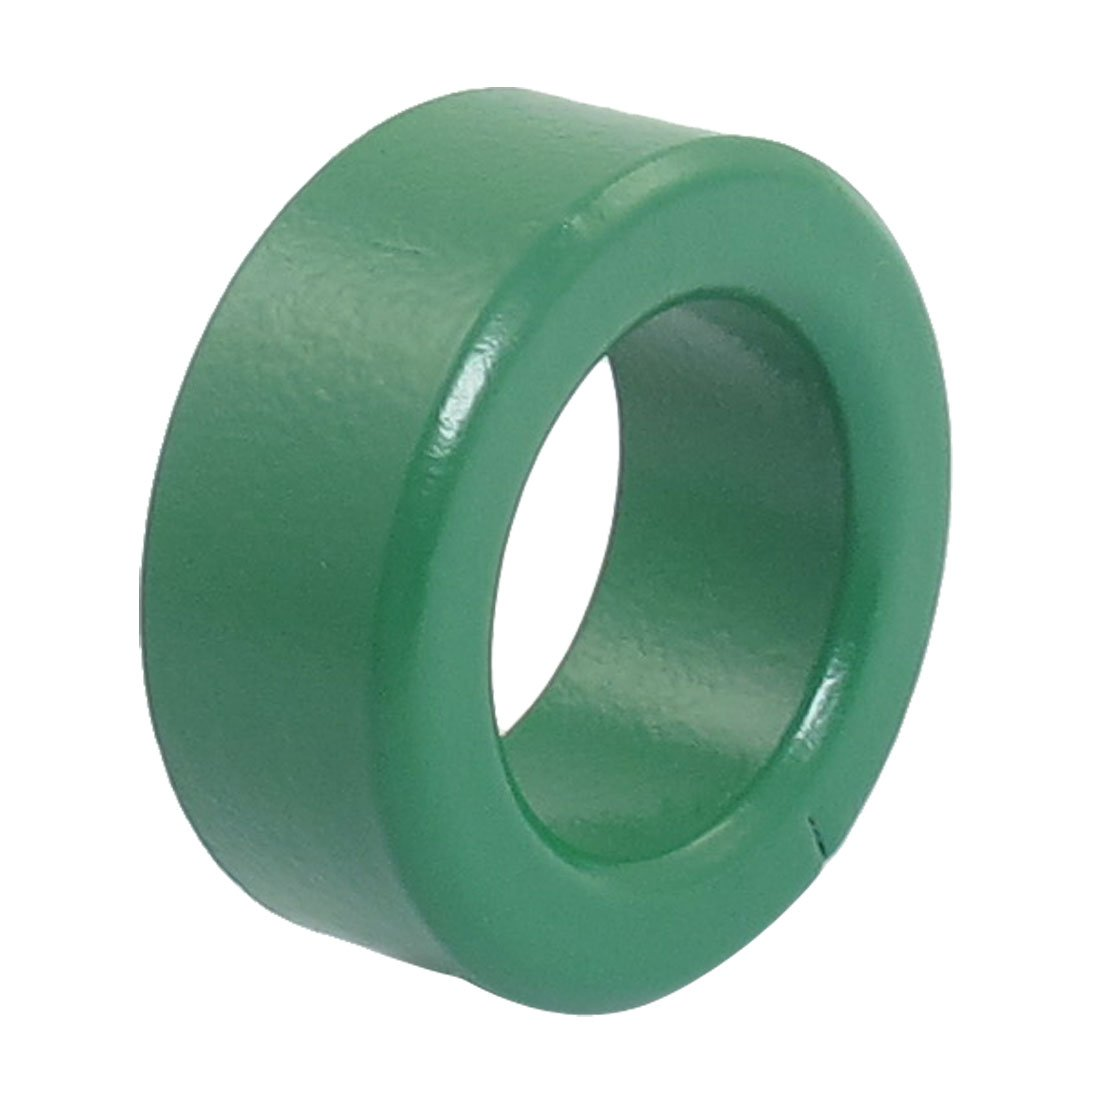 36mm Outside Dia Green Iron Inductor Coils Toroid Ferrite Cores rb6132 36 0m4 inductor mr li